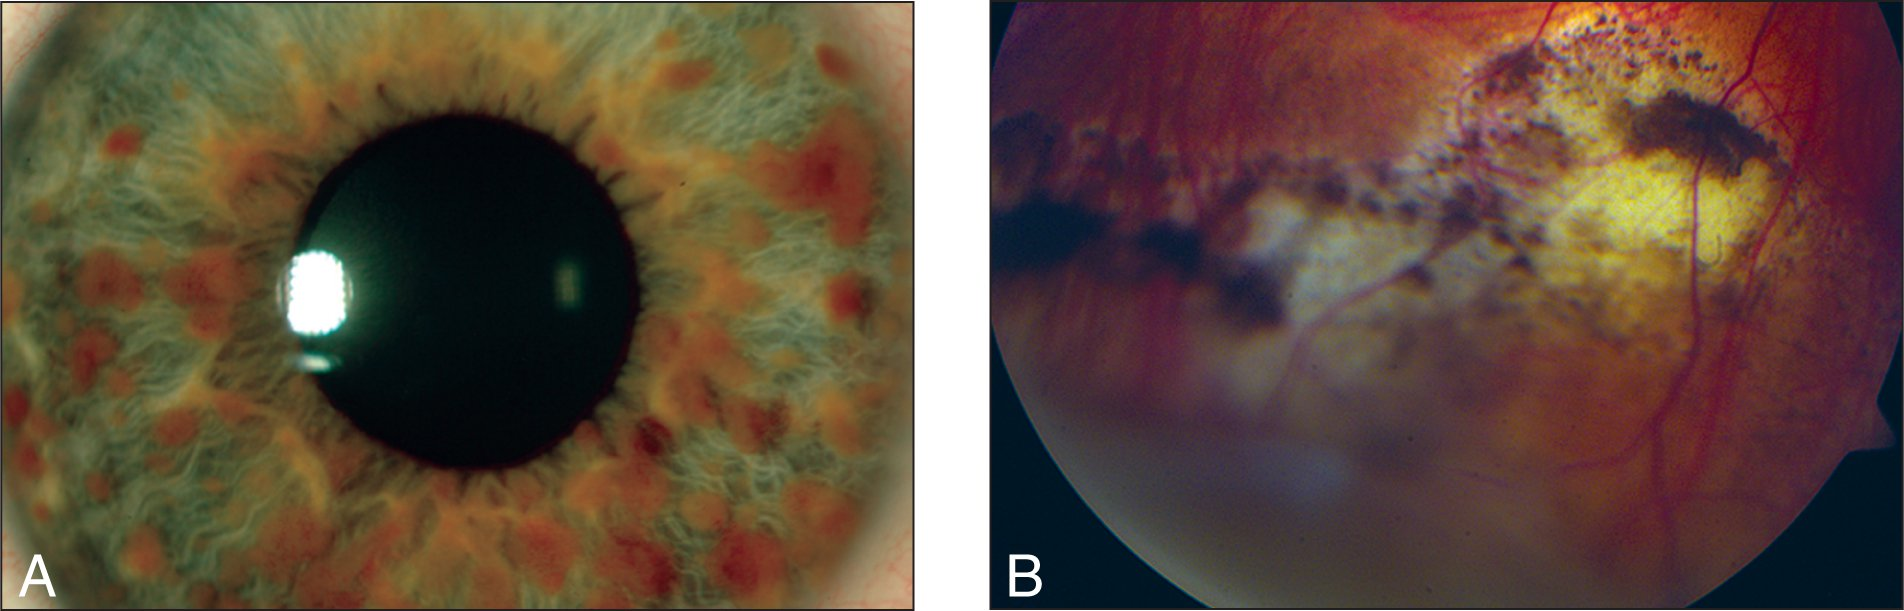 (A) After Treatment with Cryotherapy and Two Intravitreal Injections of Bevacizumab, Neovascularization of the Iris Resolved Almost Completely. (B) The Vasoproliferative Tumor Appeared Less Vascular, with Chorioretinal Atrophy and Hyperpigmentation of the Posterior Margin. Note Resolution of Lipid Exudates.